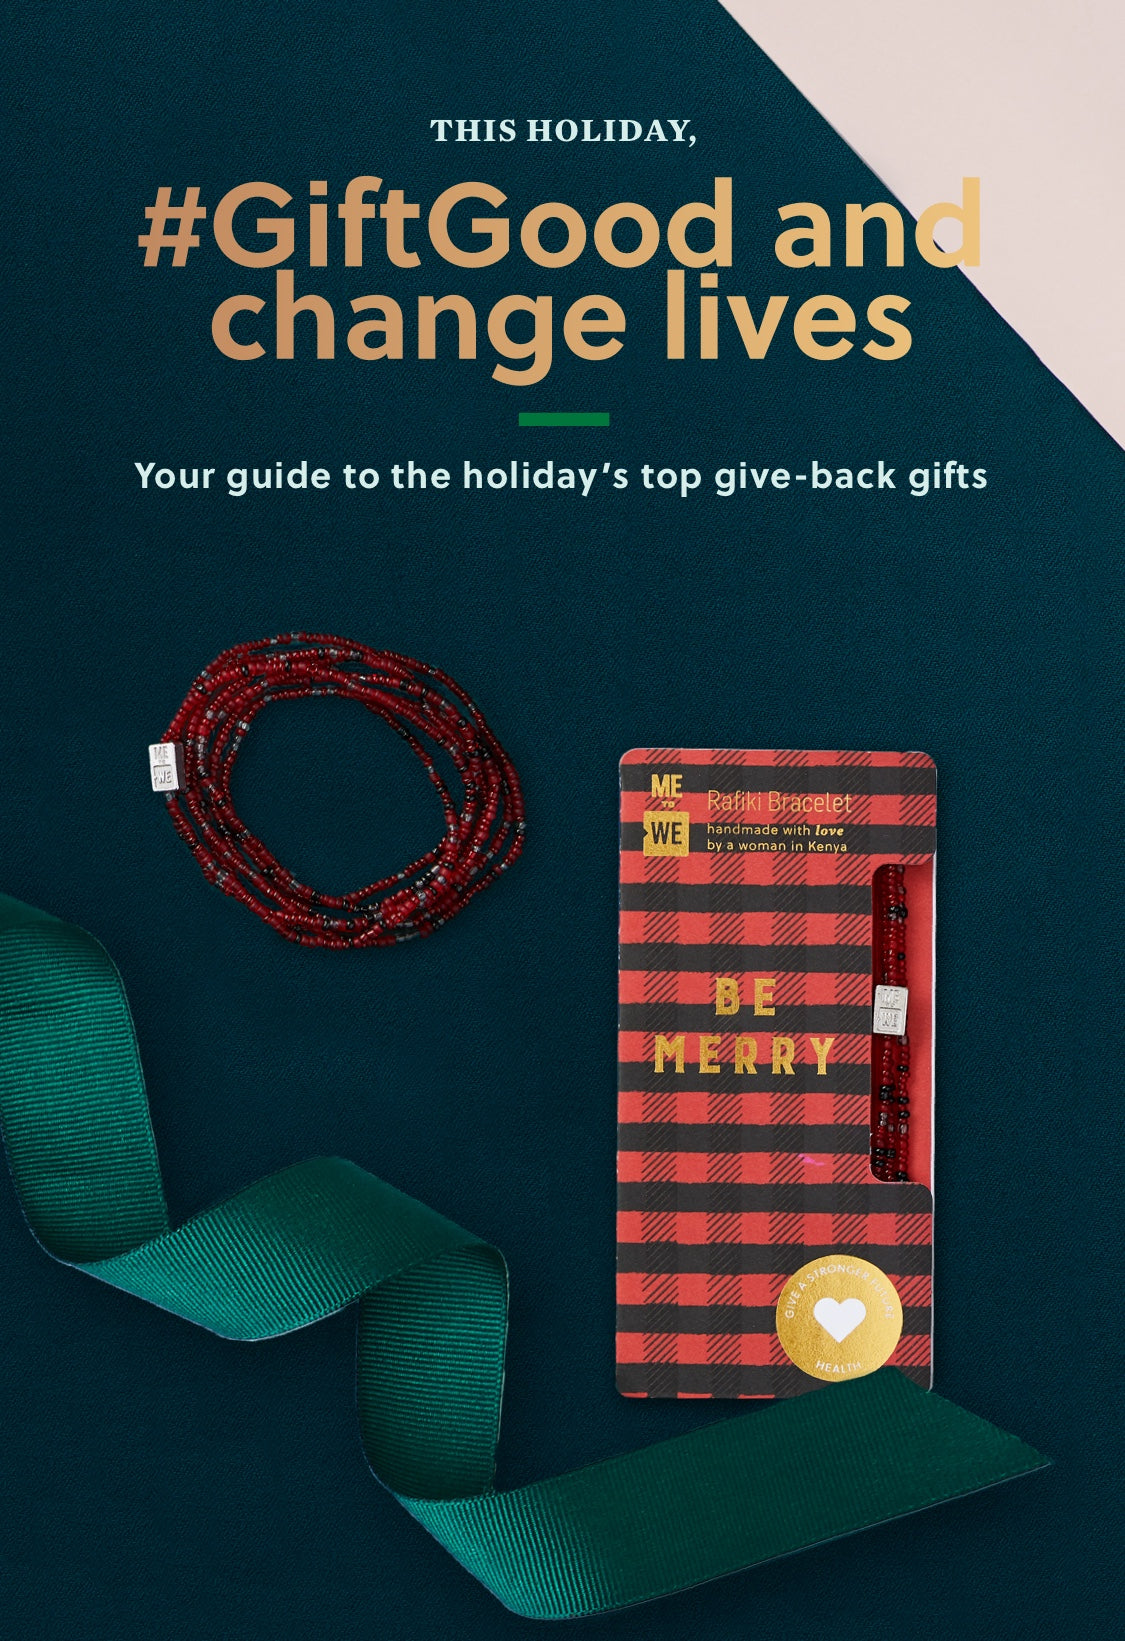 This holiday GiftGood and change lives. | Your guide to the holiday's top give-back gifts.